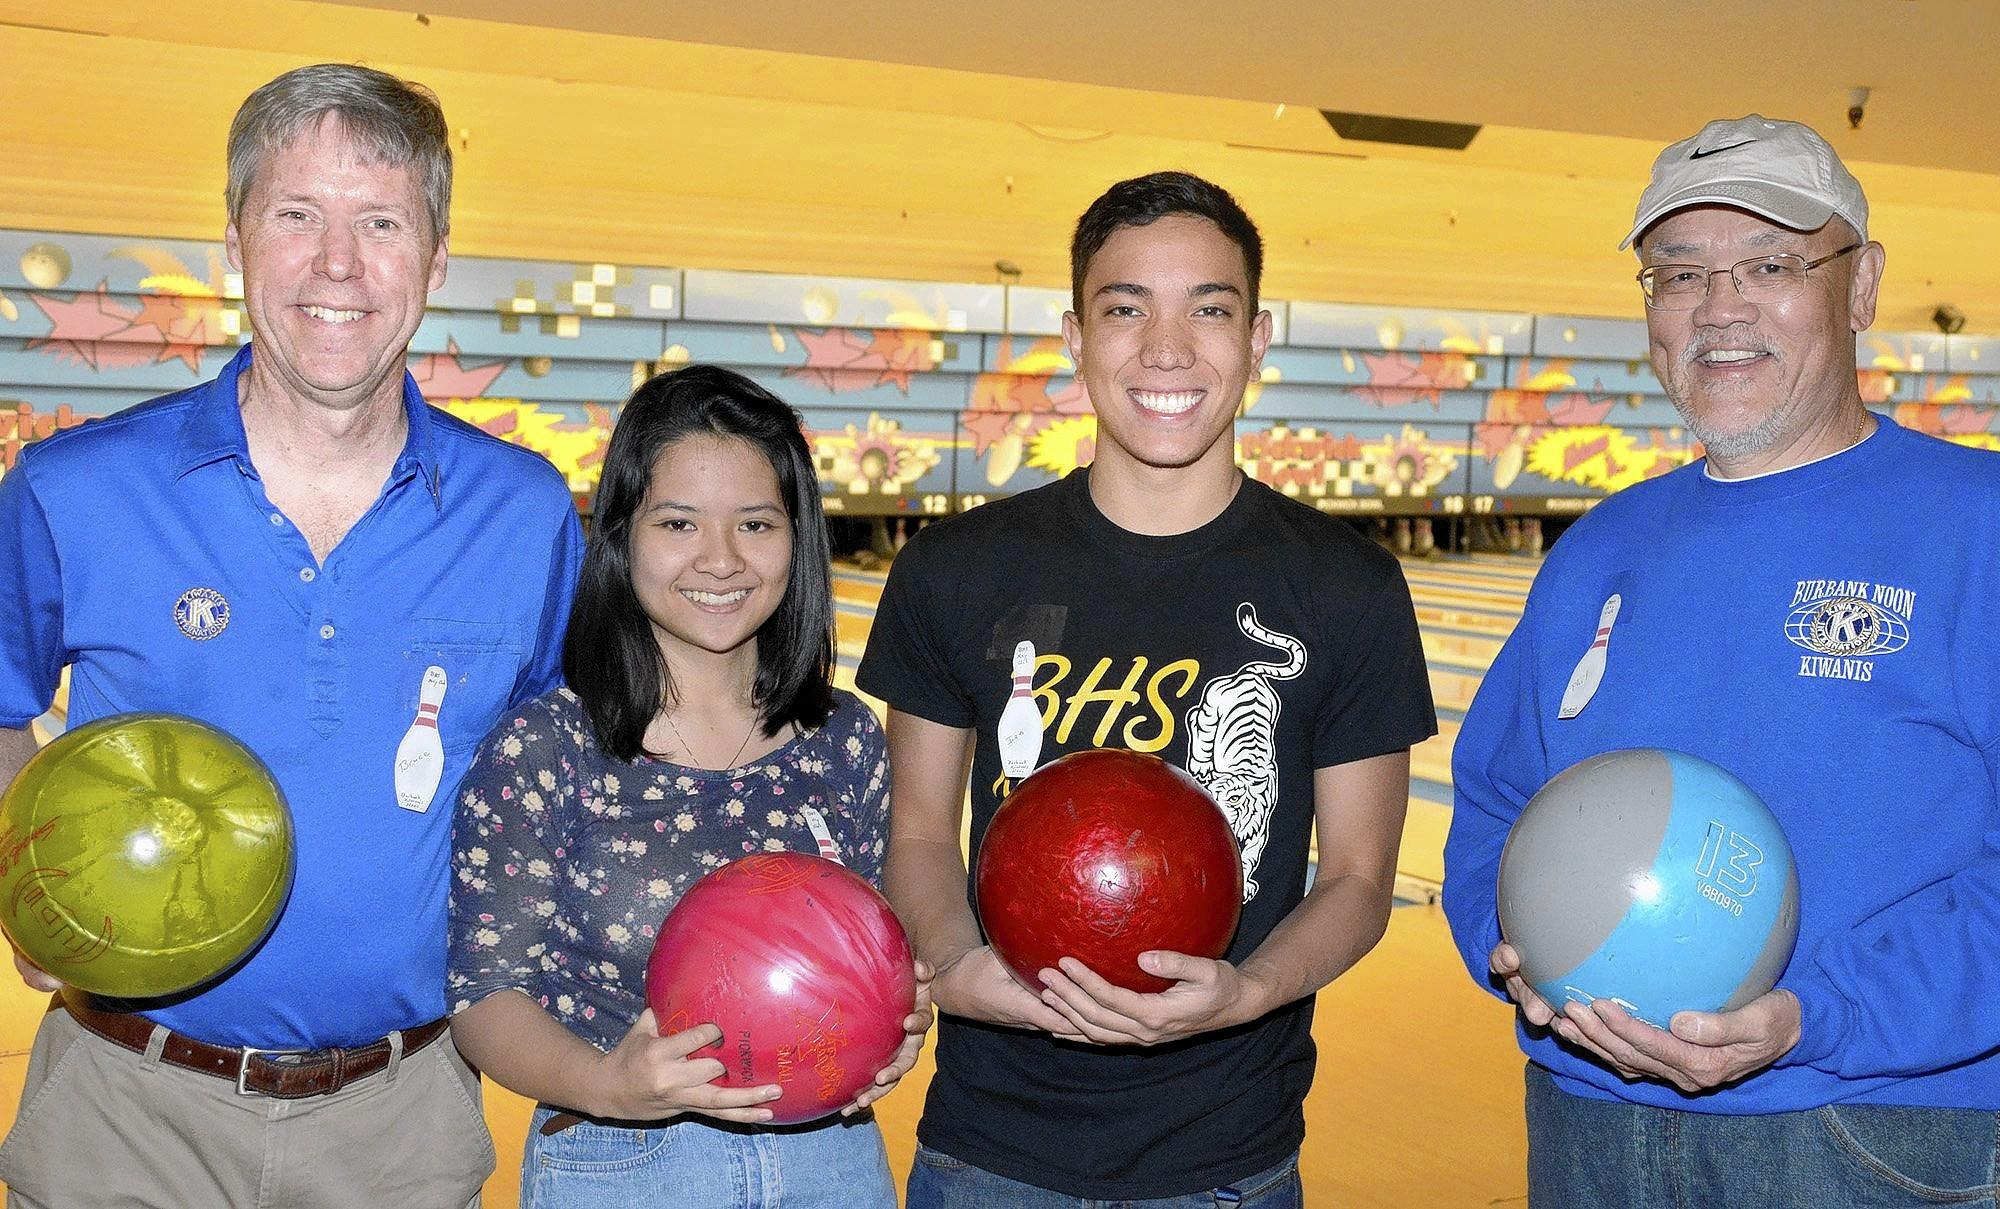 Ready to roll at the Pickwick Bowl, are Bruce Lilly, from left, Daisy Duong, Ian Shovestull and Phil Jue.